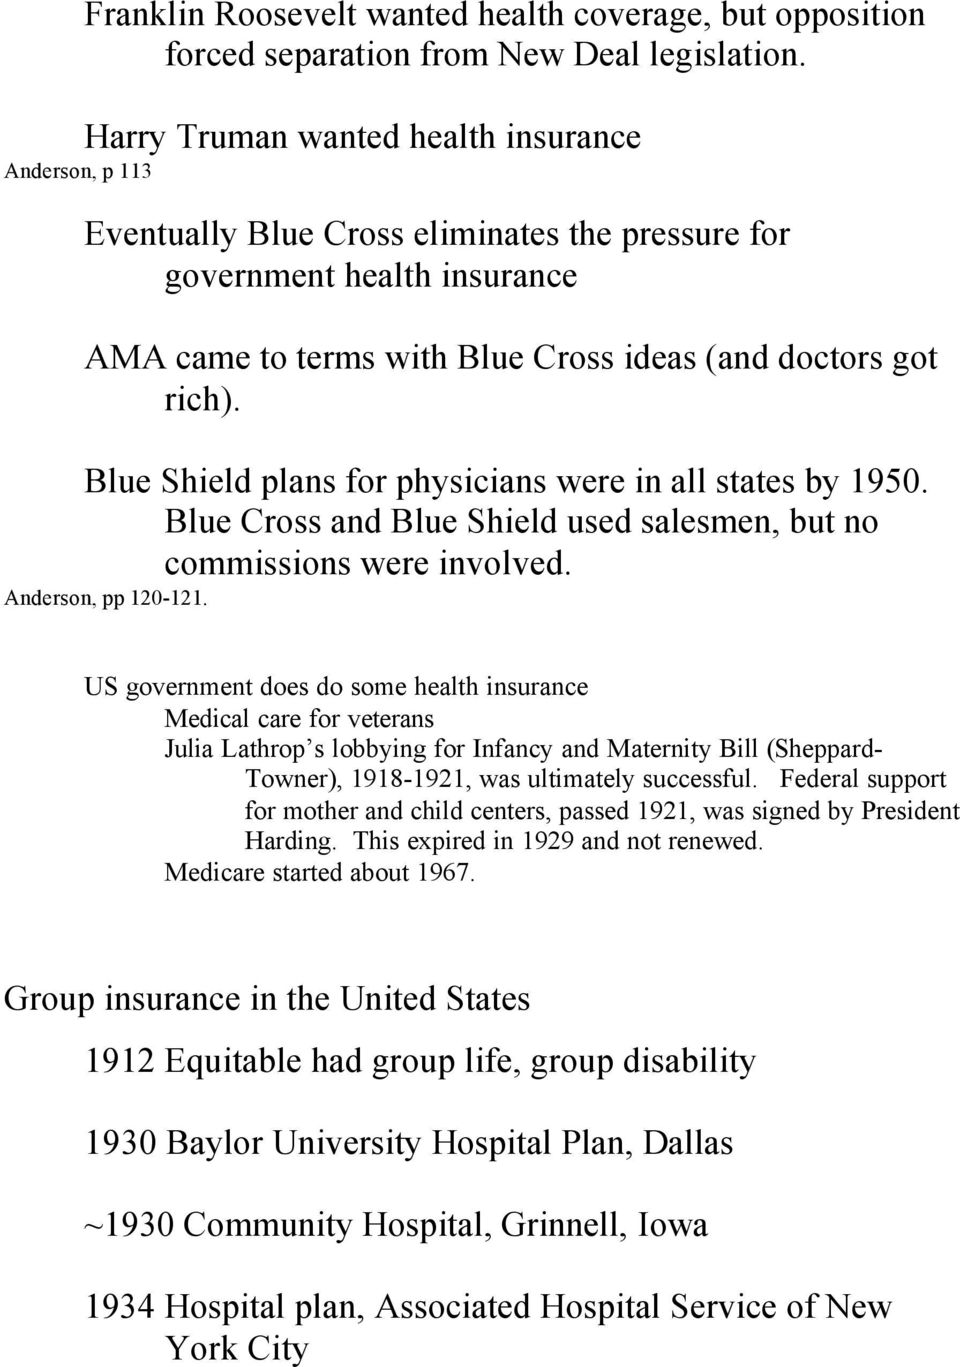 Blue Shield plans for physicians were in all states by 1950. Blue Cross and Blue Shield used salesmen, but no commissions were involved. Anderson, pp 120-121.